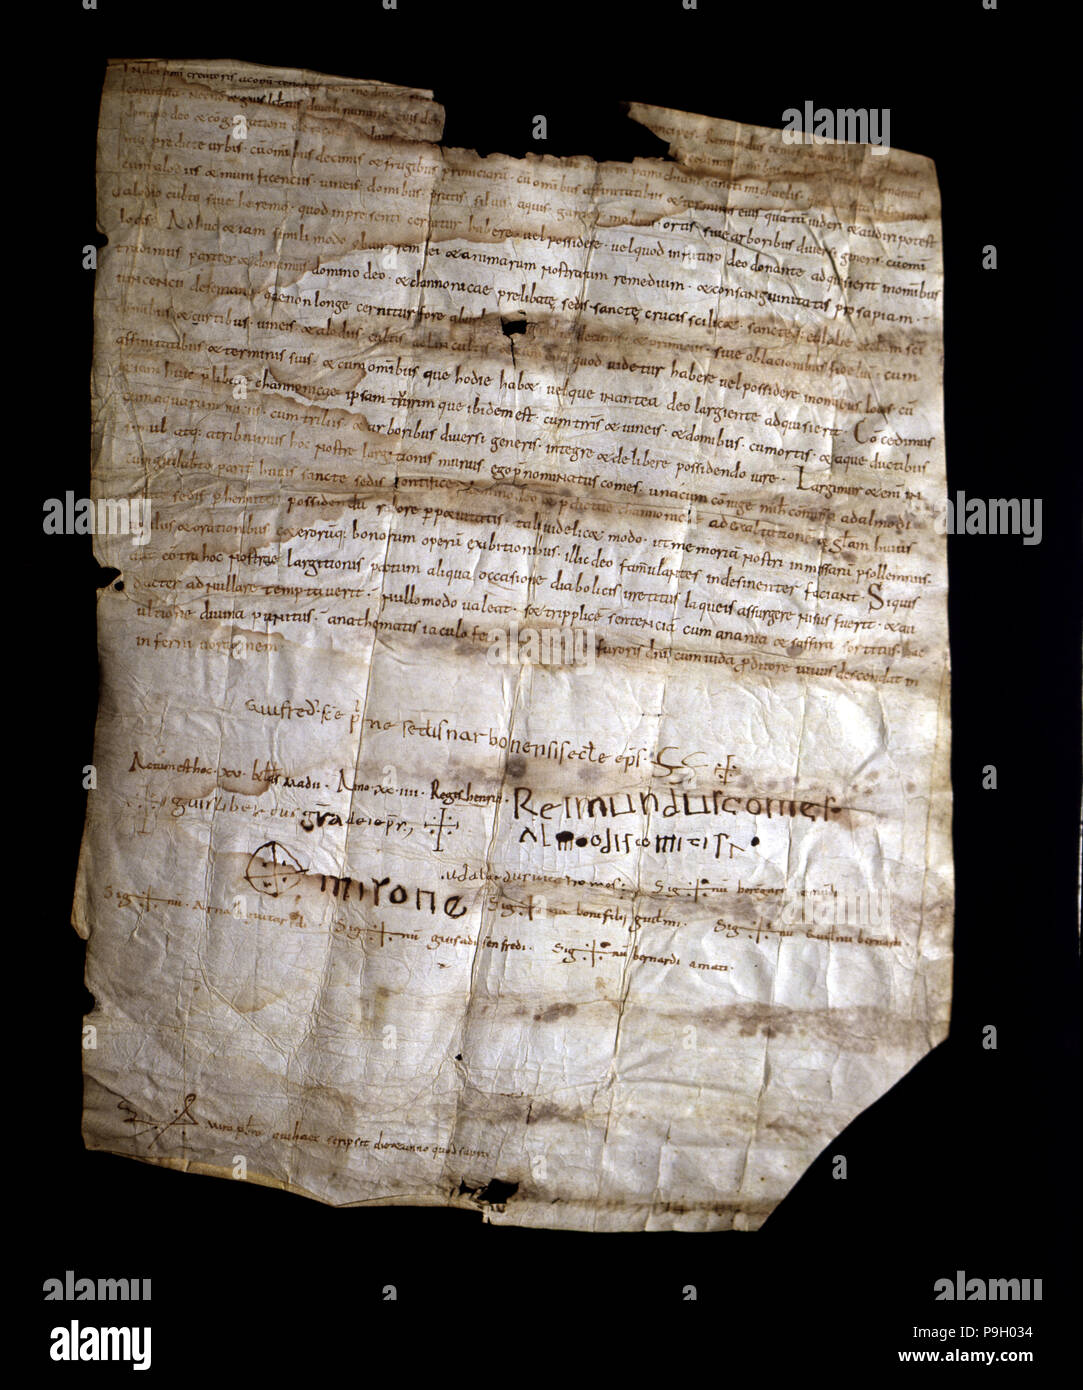 Donation of Count Ramon Berenguer I and his second wife Almodis to the Seu of Barcelona from the church of Sant Miquel, near Barcelona, parchment, 105 - Stock Image